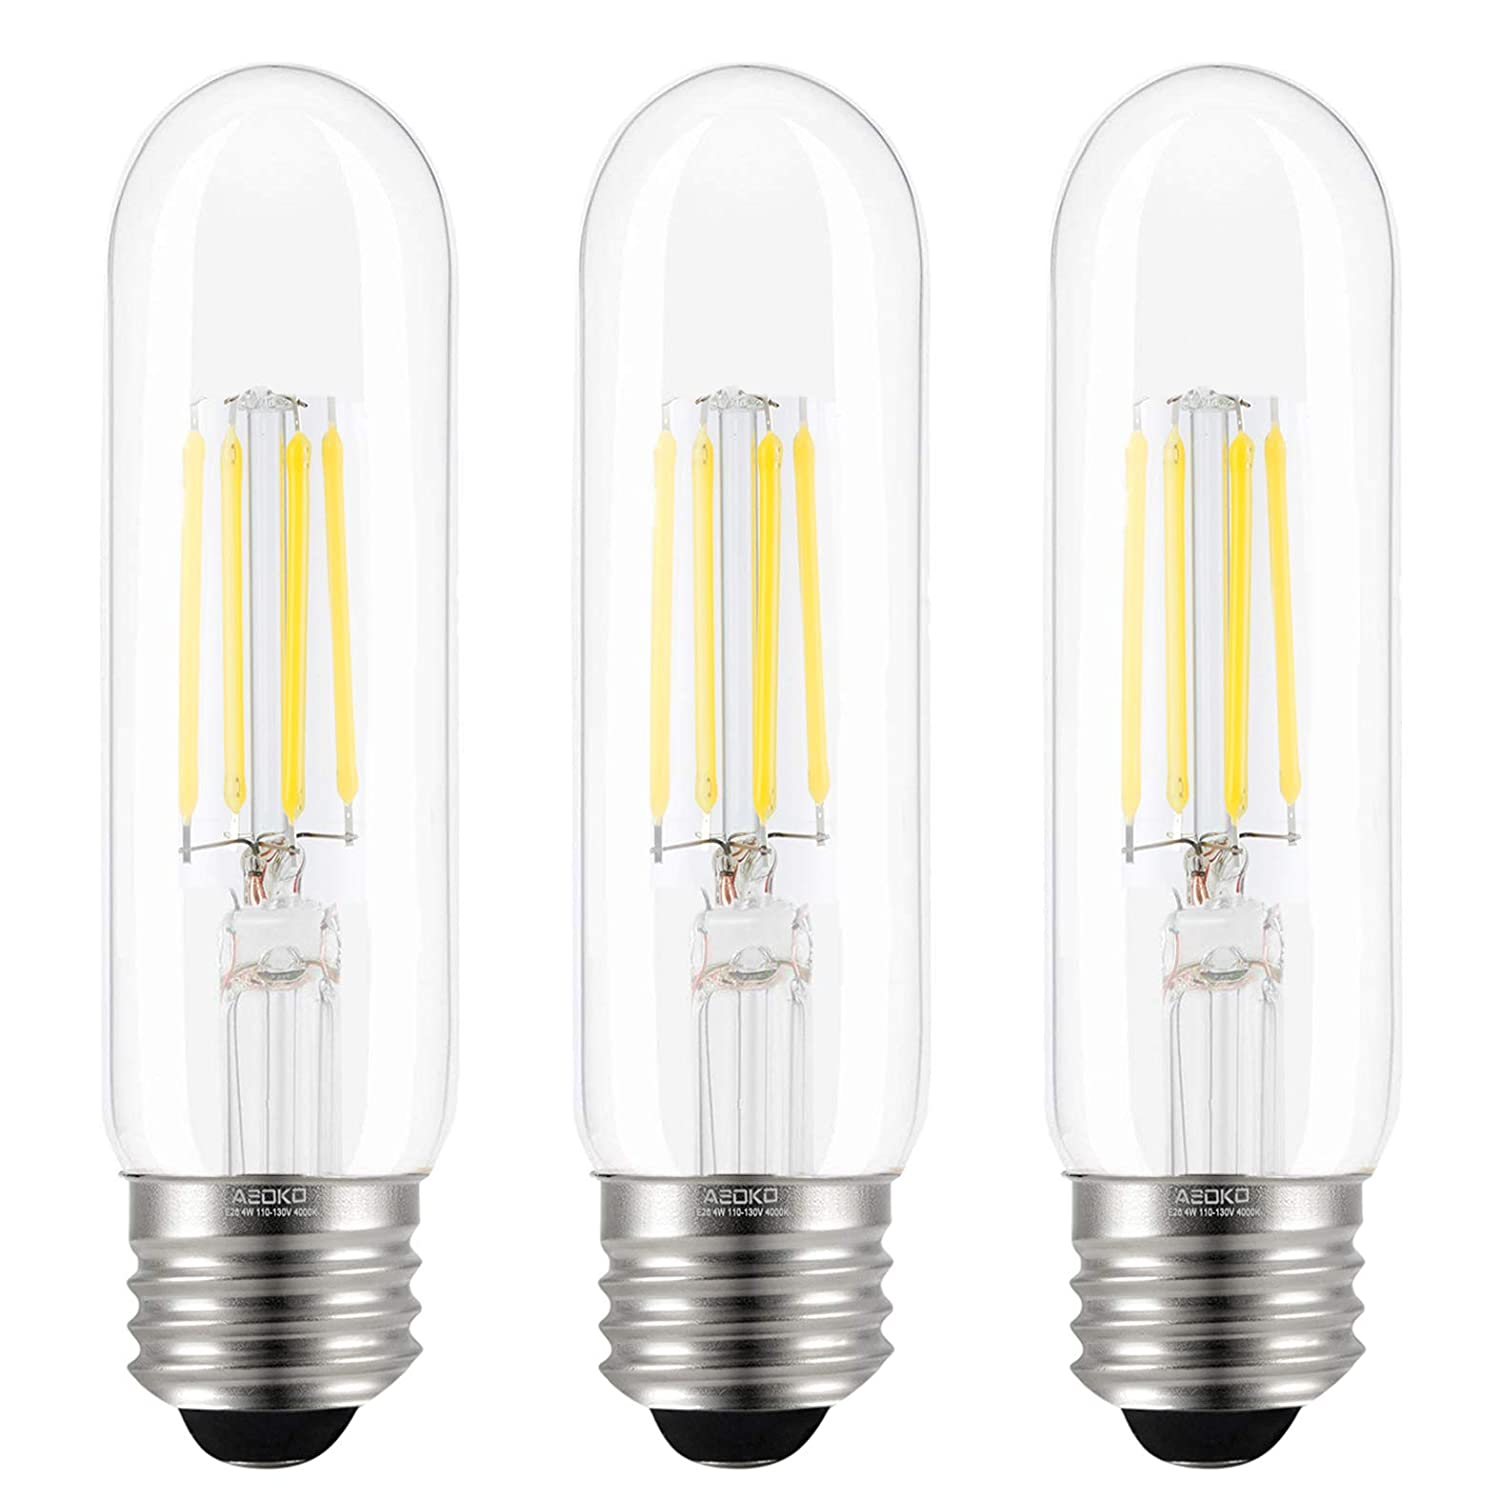 T10 LED Bulbs Daylight 4000K LED Tubular Edison Light Bulbs 4W Dimmable Tube Vintage Led Bulbs 40 Watt Equivalent,E26 Medium Base, LED Filament Retro Bulb for Desk Lamp, Pendant Lights(3-Pack)